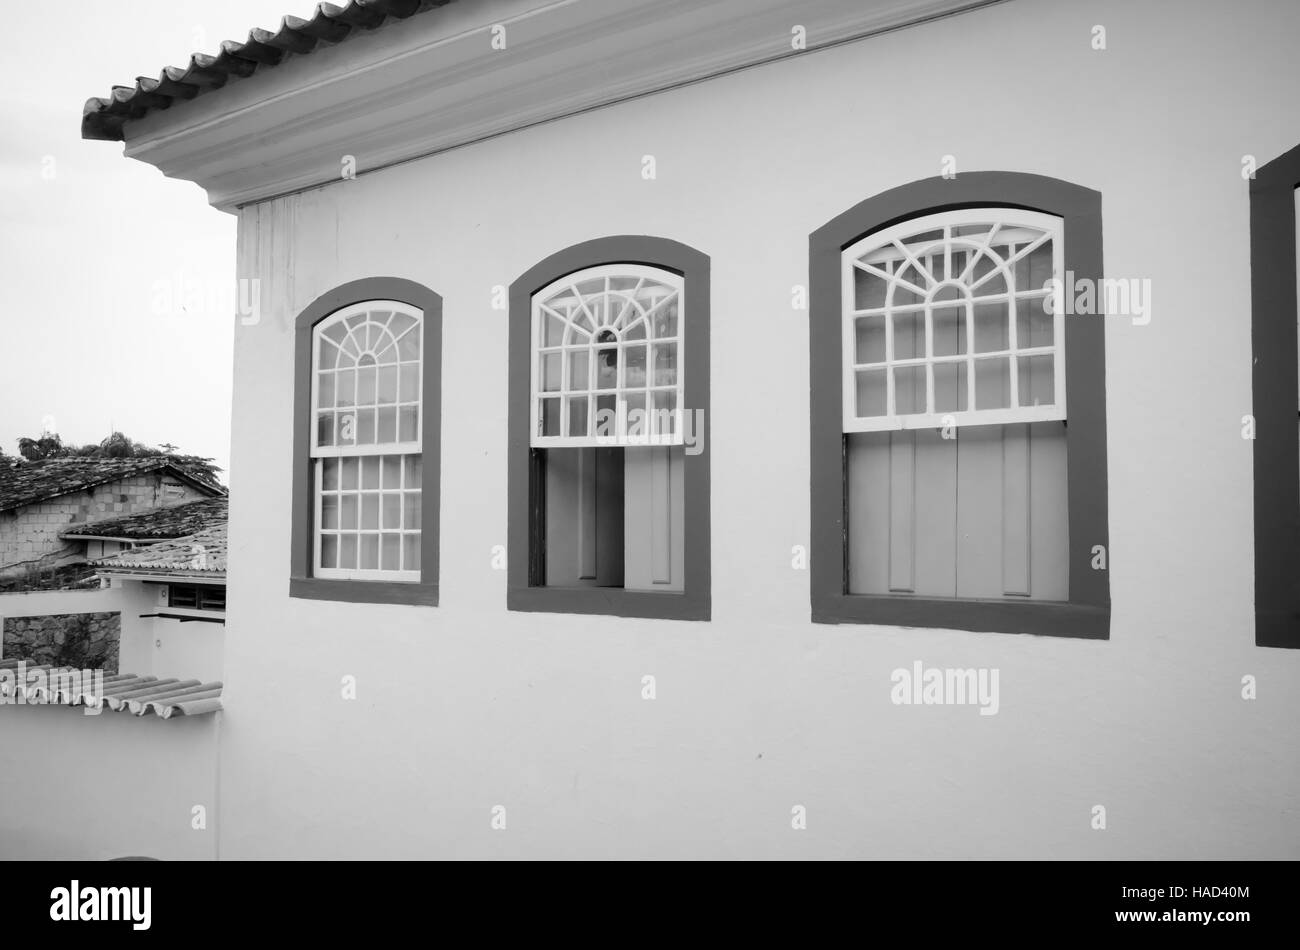 Street, old portuguese colonial houses in historic downtown of Paraty, State Rio de Janeiro, Brazil. - Stock Image